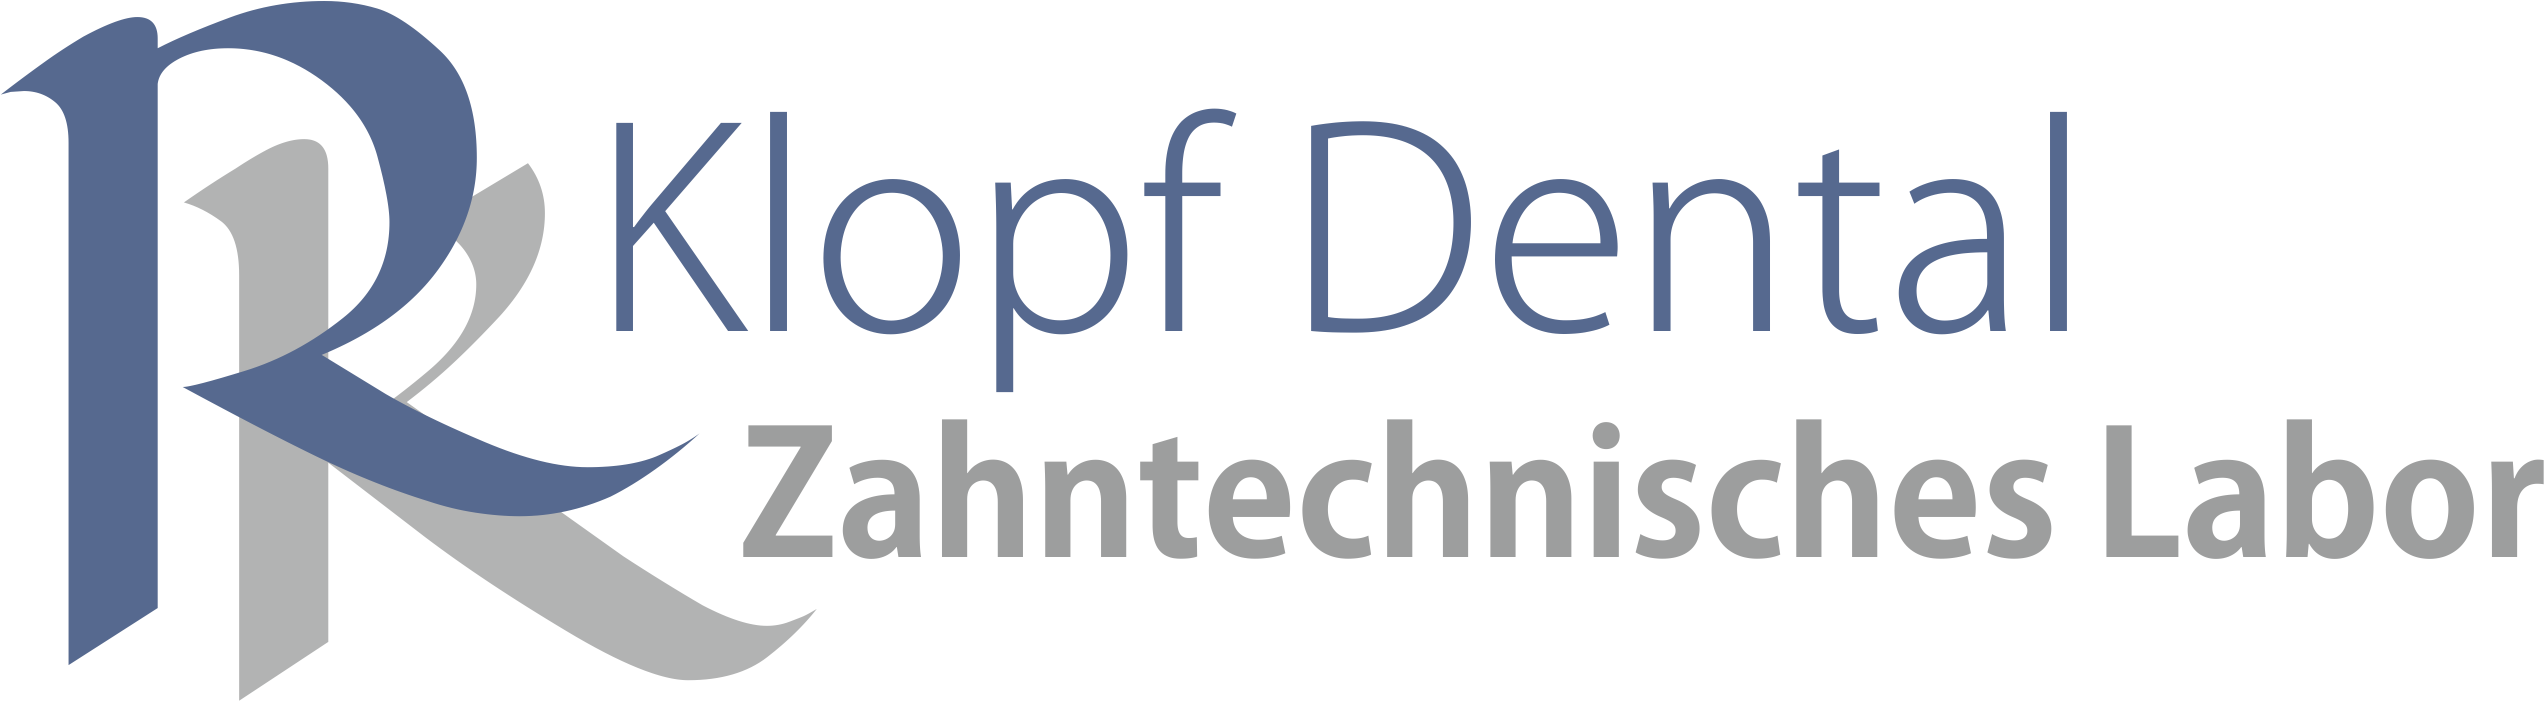 René Klopf Dental - Logo